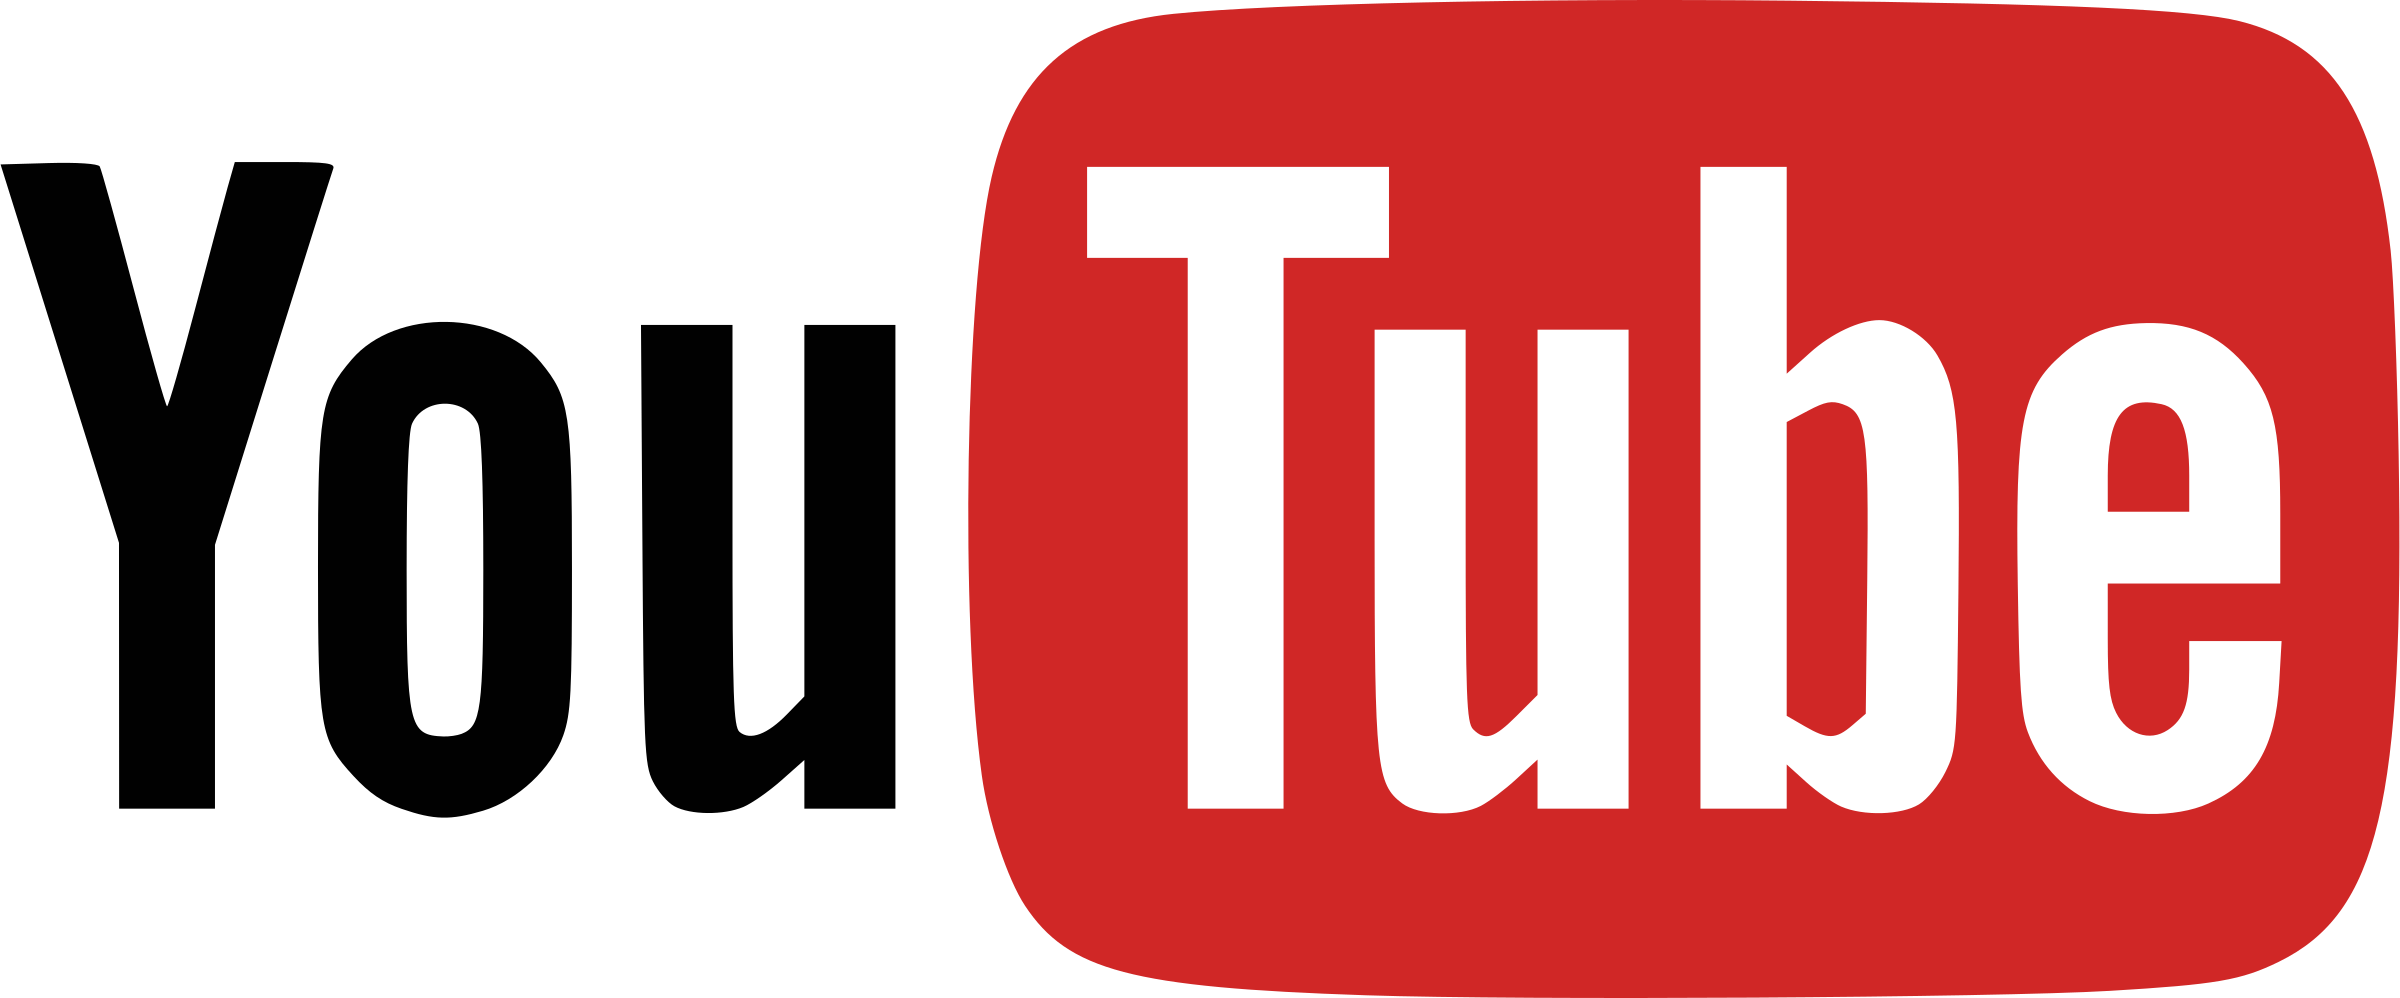 Youtube logo black png. Transparent svg vector freebie